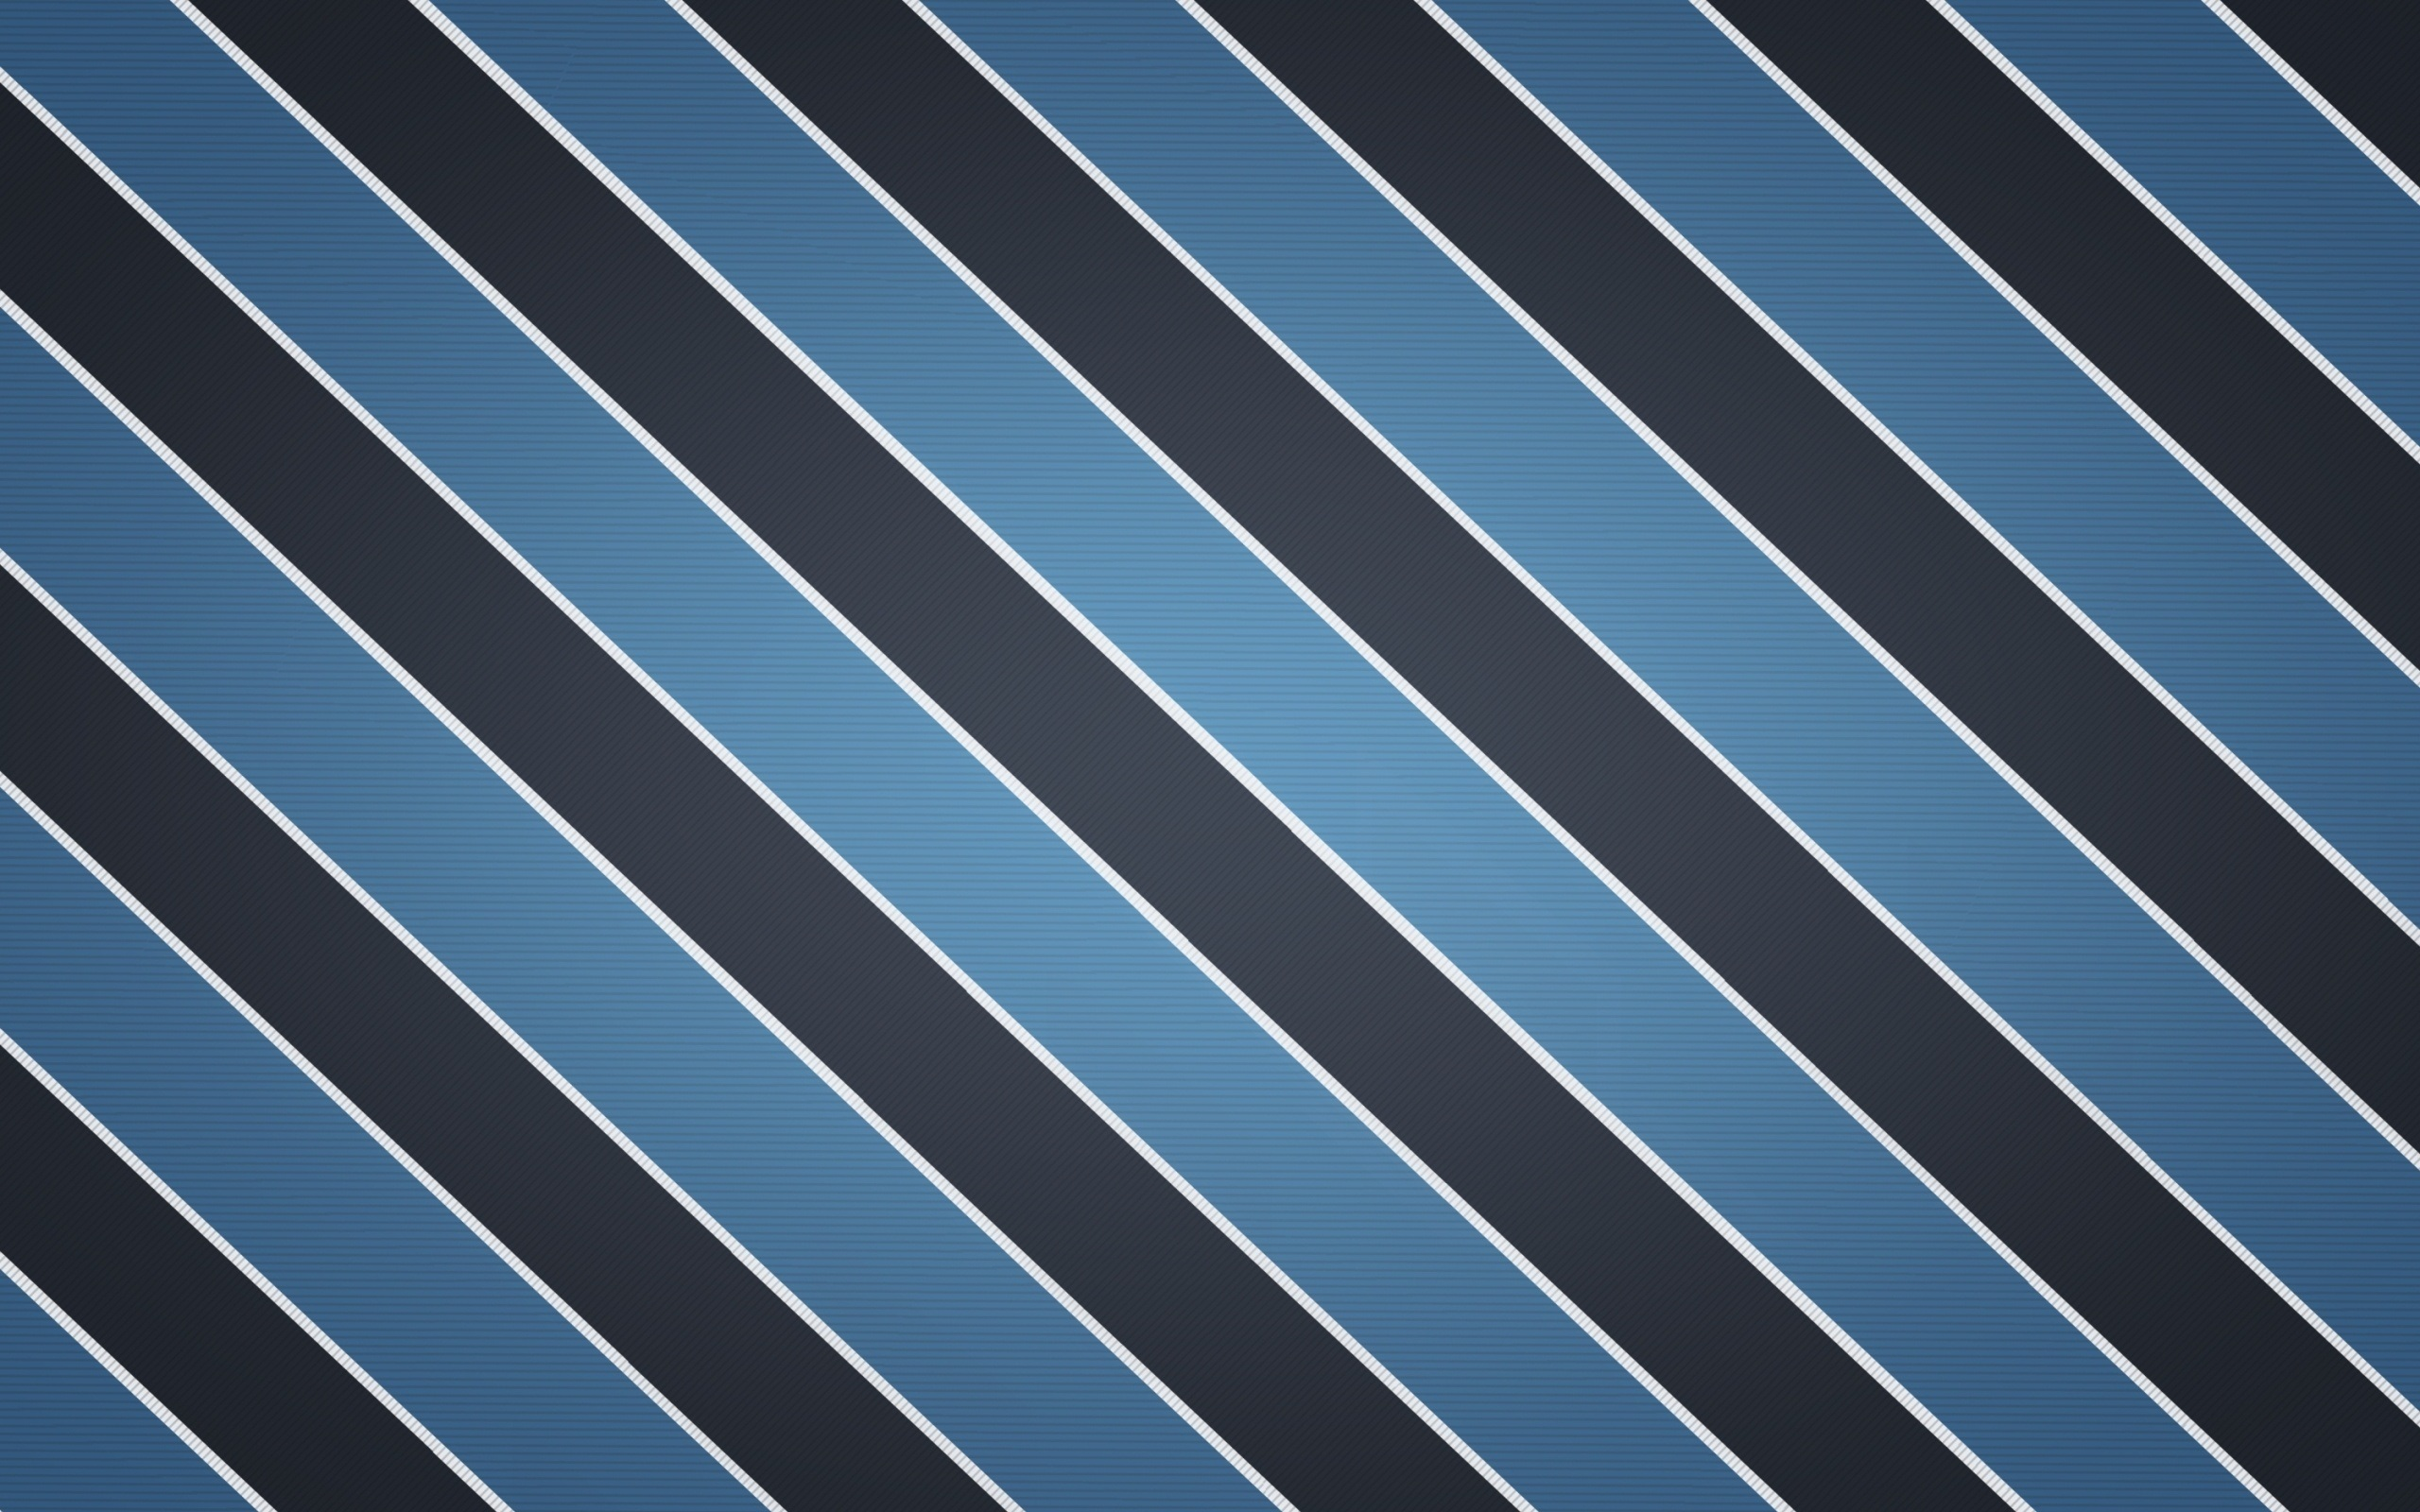 Download Black And Blue Striped Wallpaper Gallery